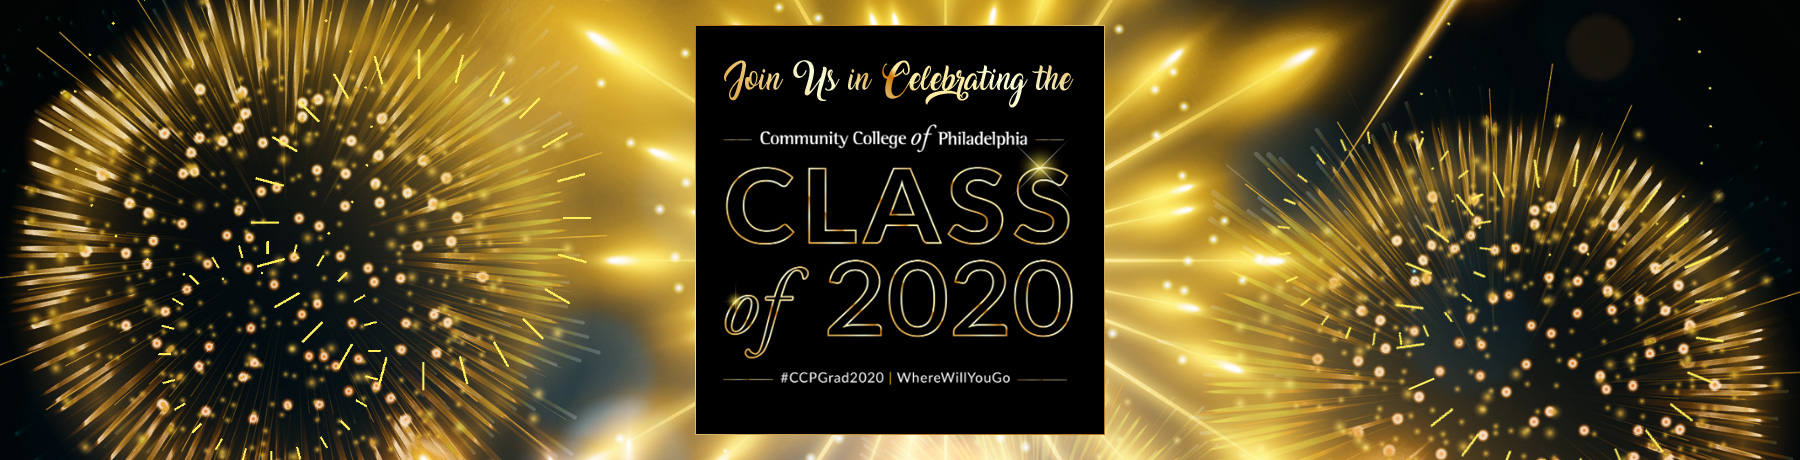 Join Us in Celebrating the Class of 2020